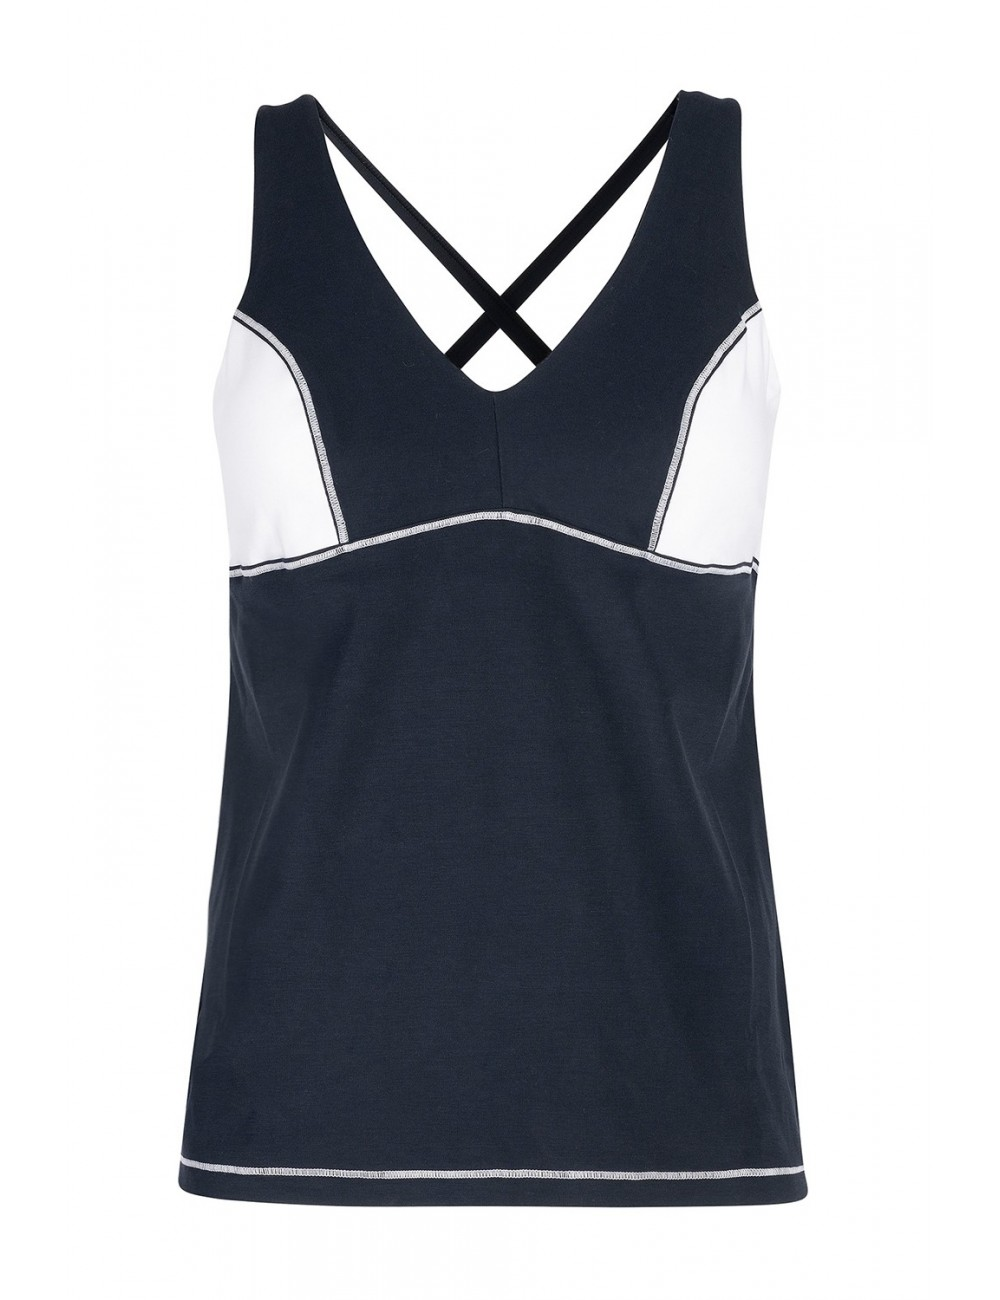 !Cropped Camisole - Performance Cotton